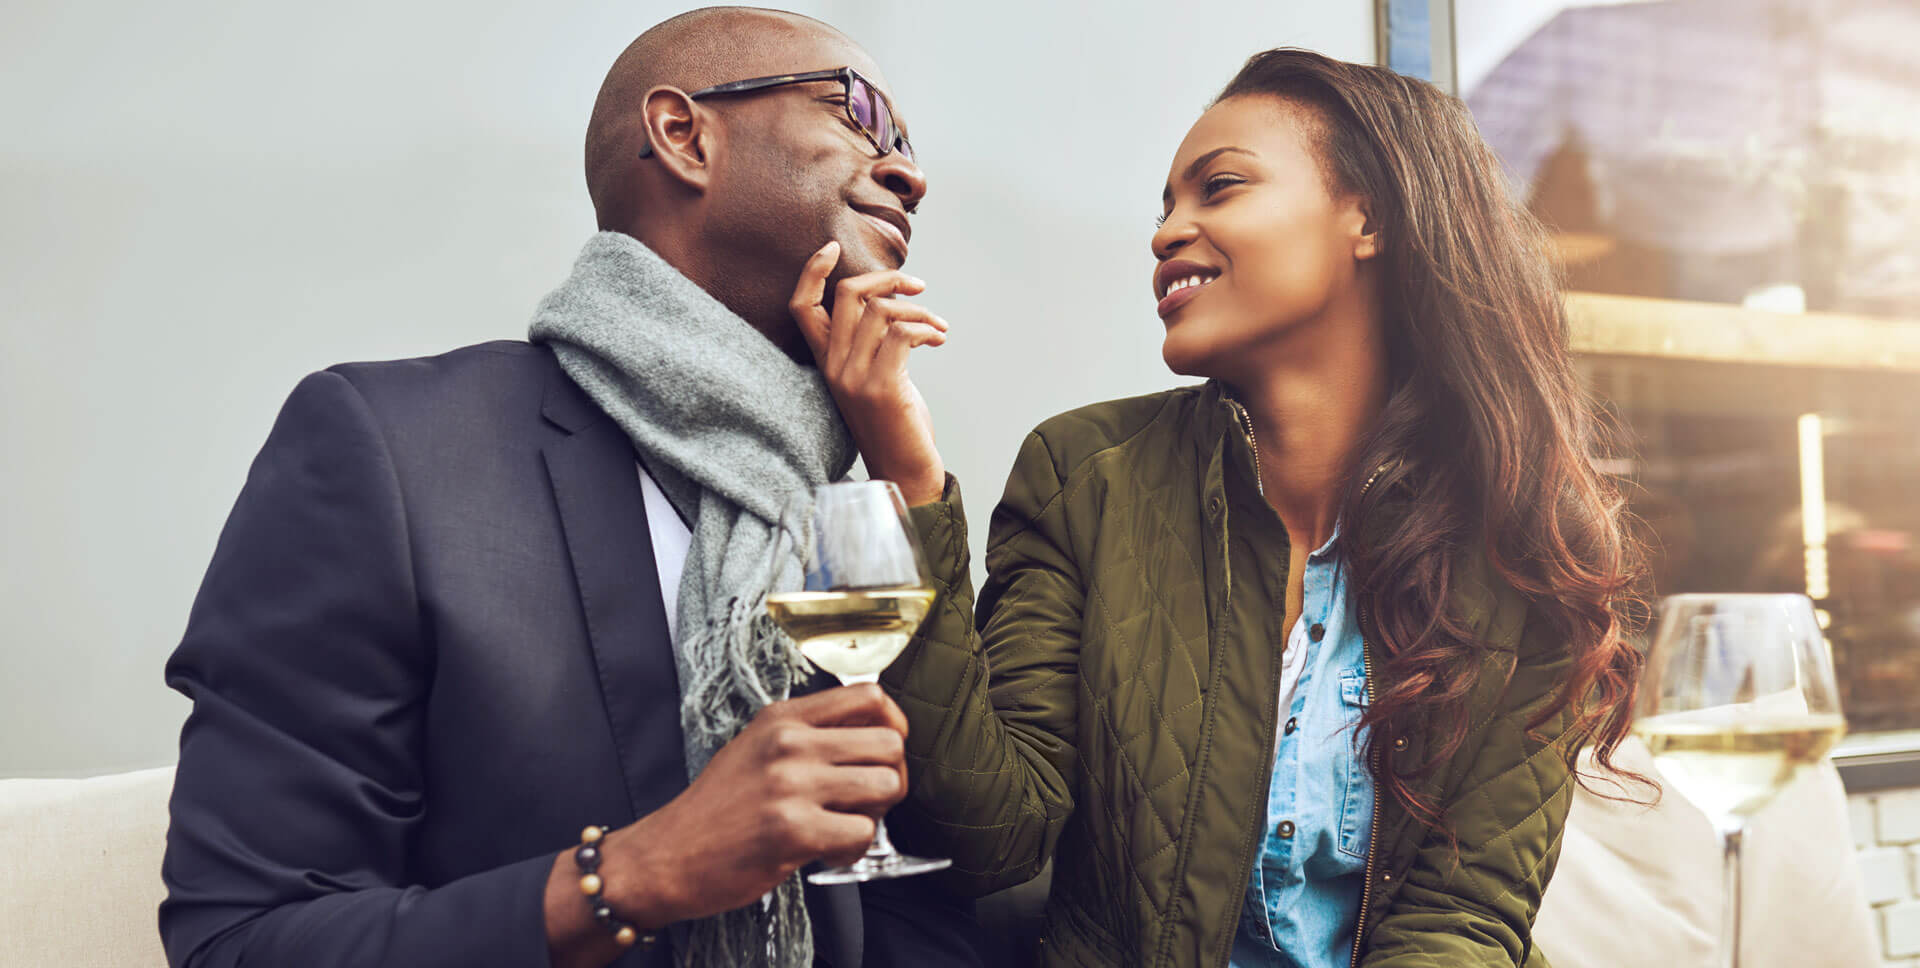 dating coach - couple on a date - dating advice for men